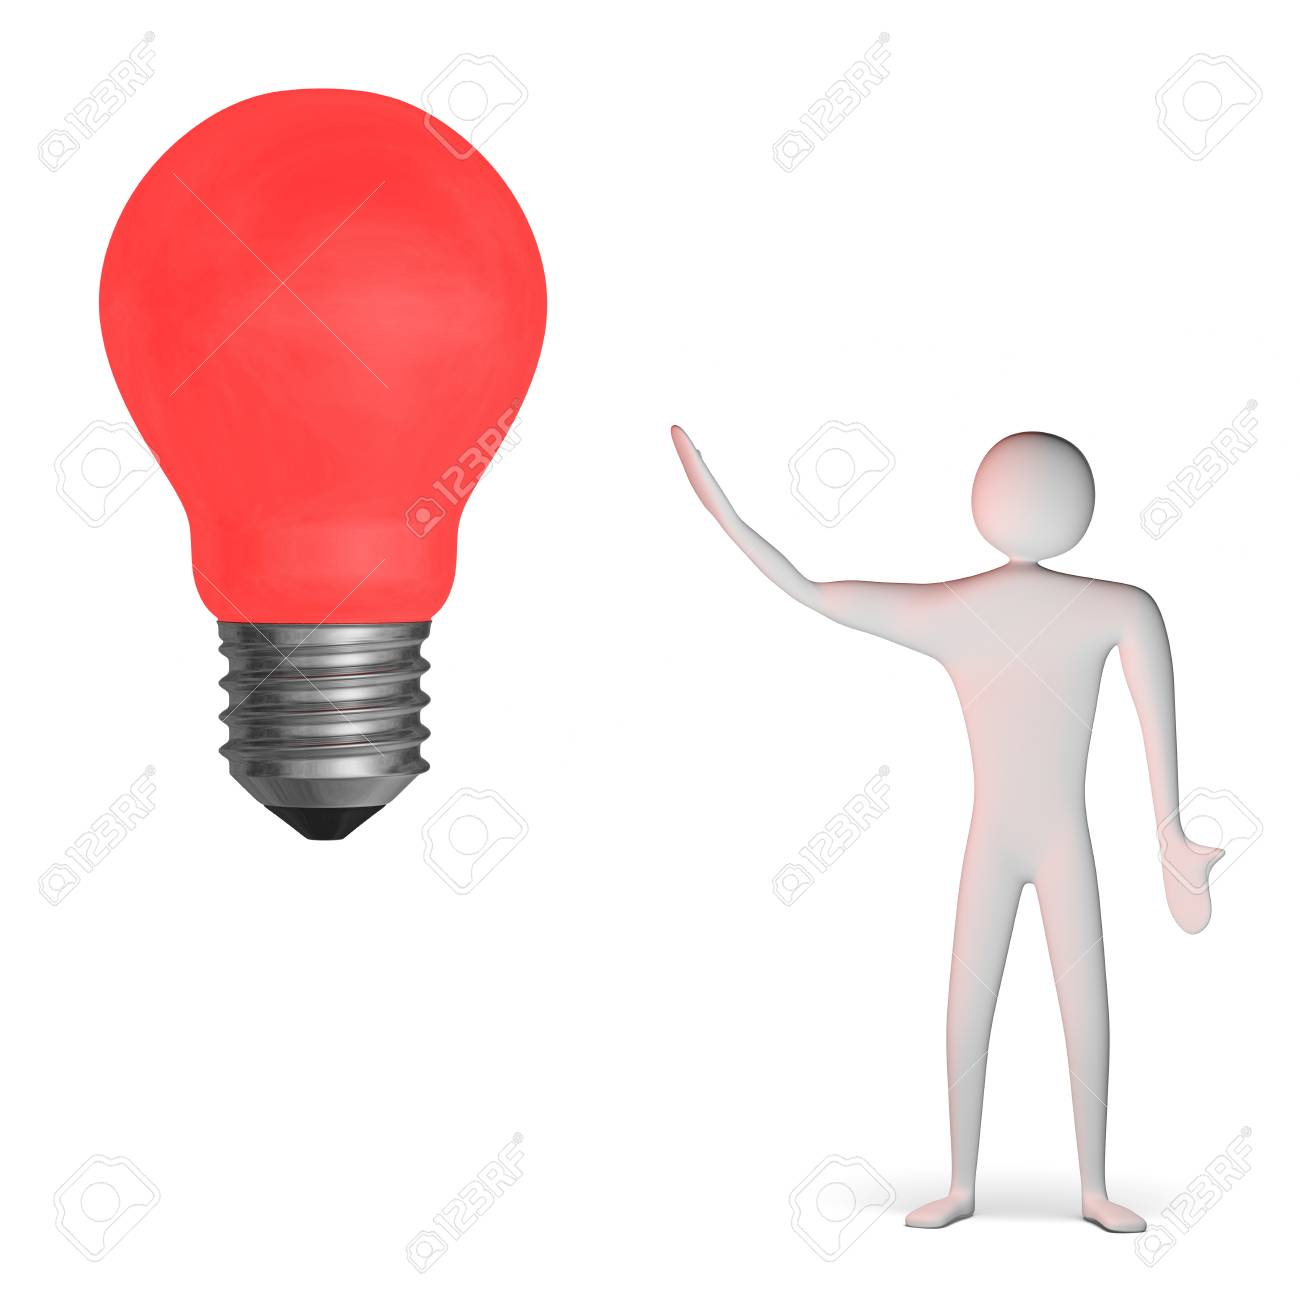 3d man and big red glowing light bulb isolated on white Stock Photo - 28093460